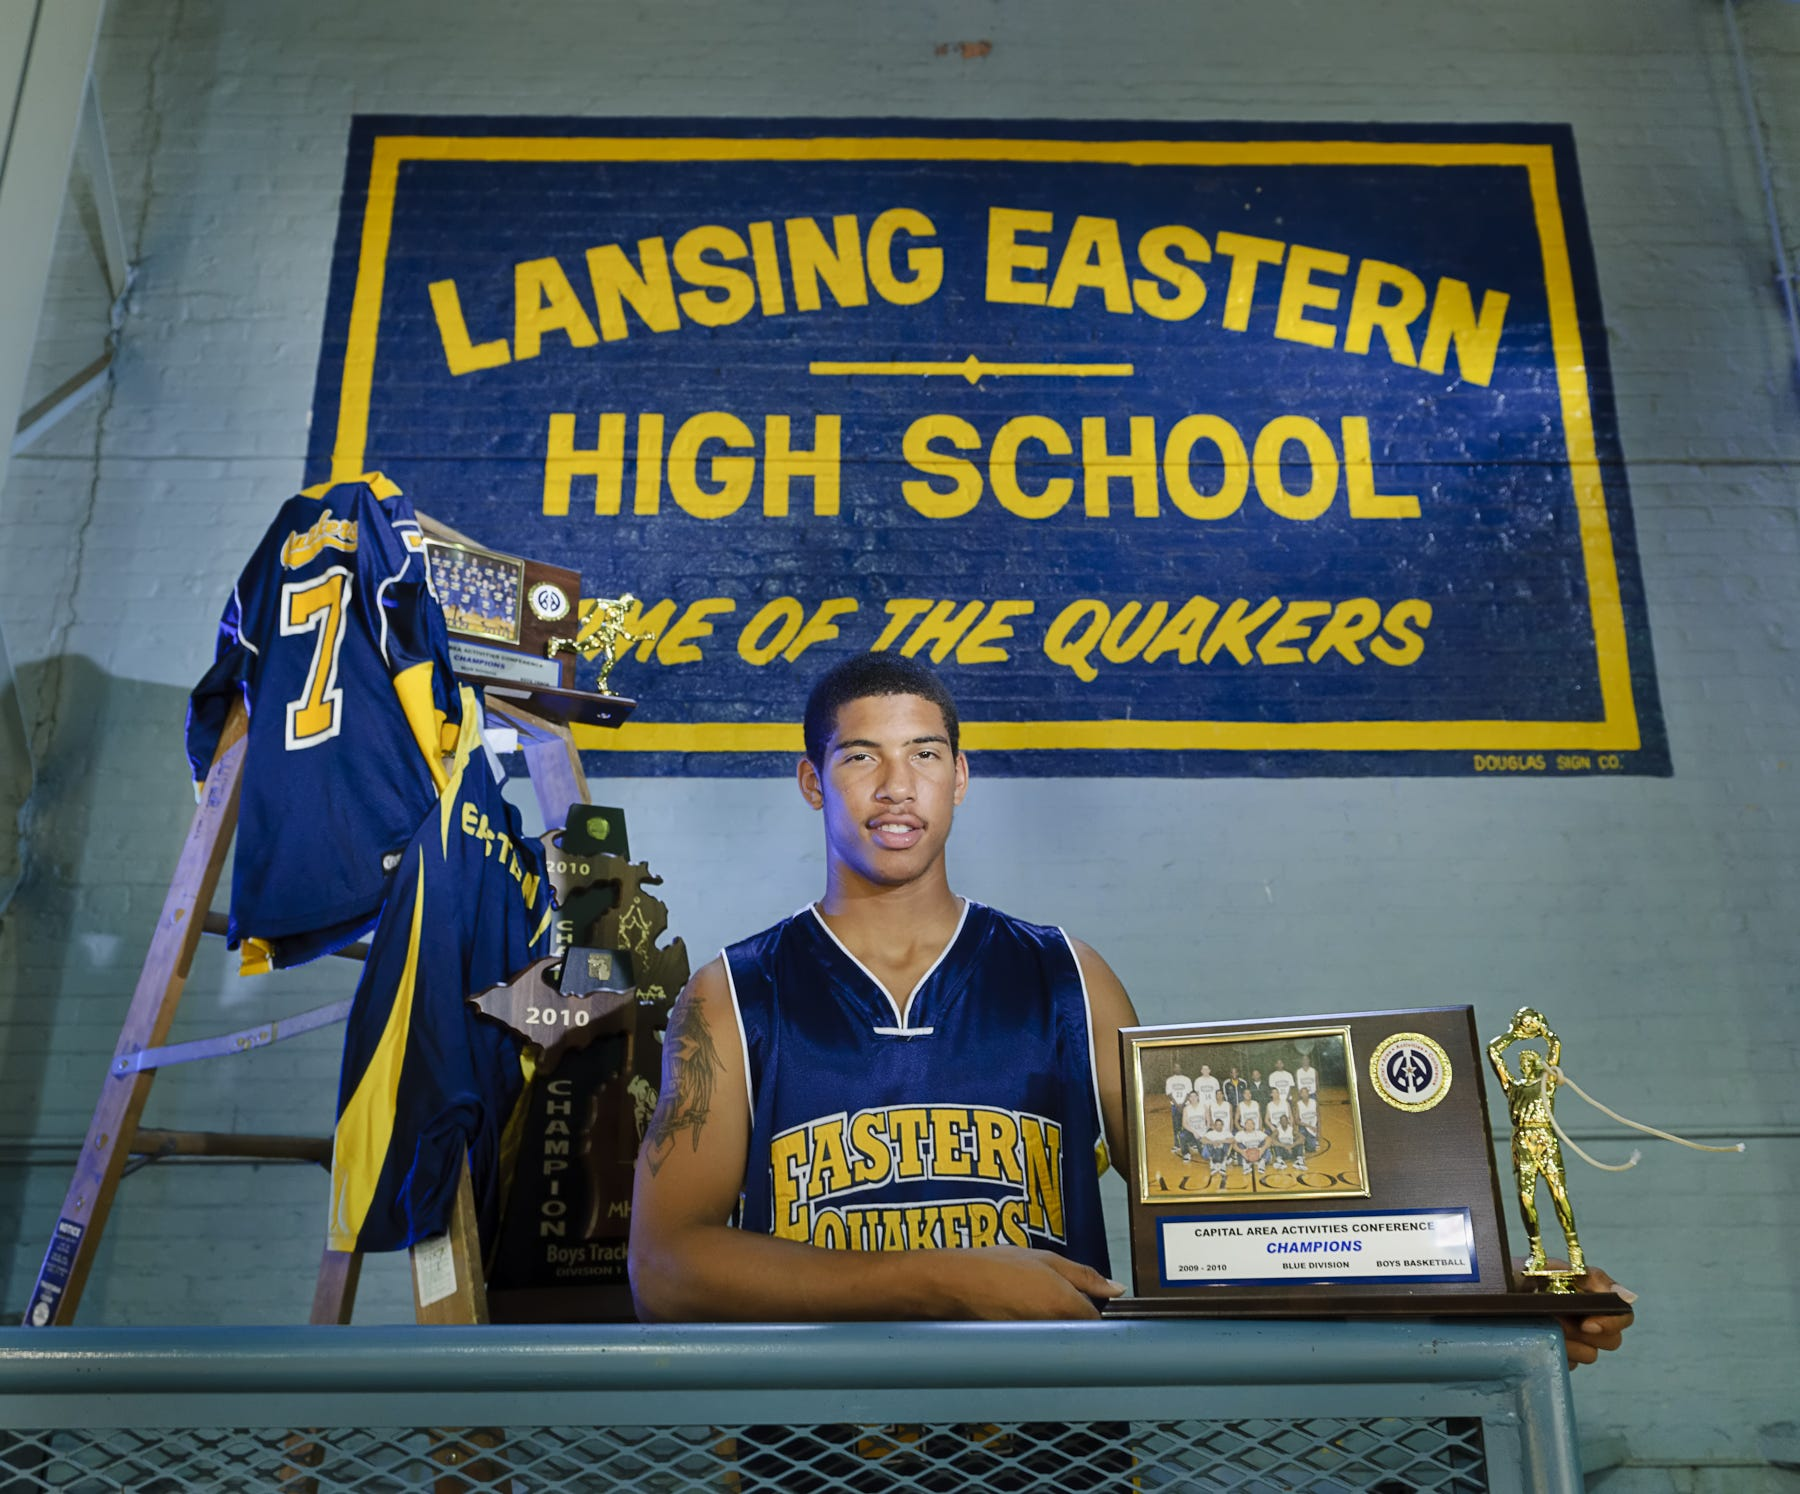 Cameron Sanchez, formerly of Lansing Eastern High School, was the State Journal's 2010 male Athlete of the Year. He's expected to play for the ABA's Lansing Legends this season.